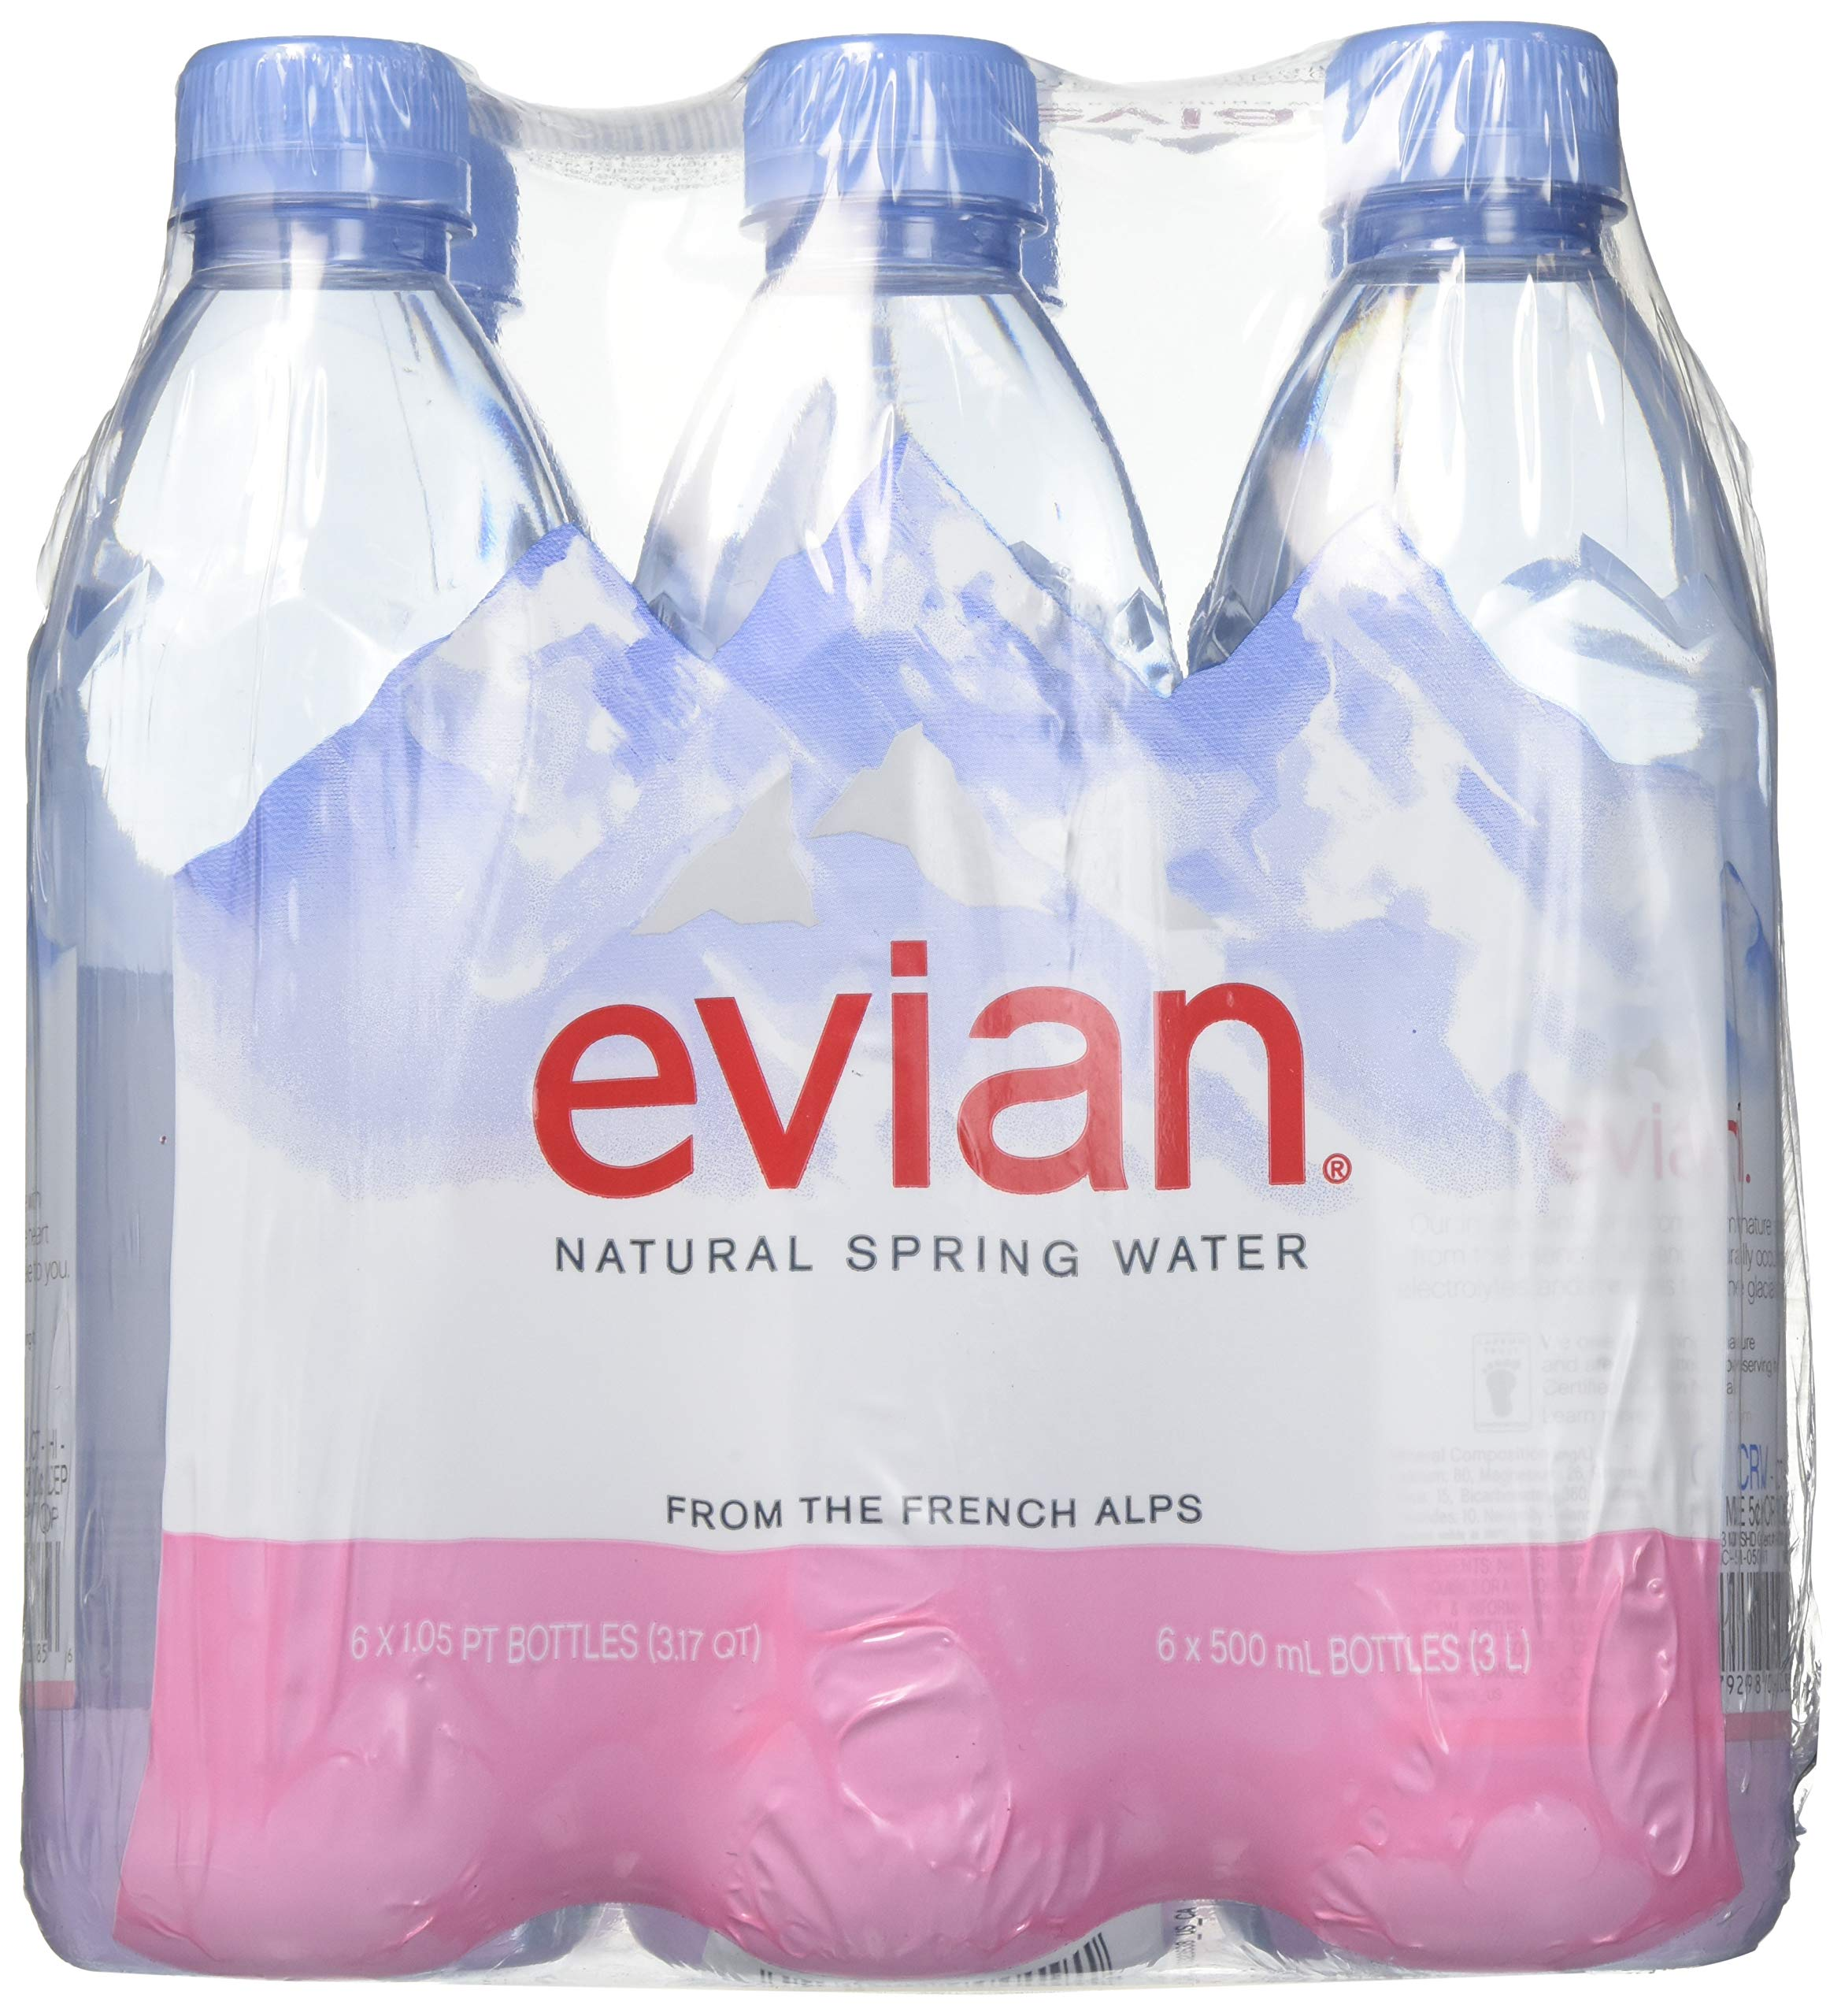 evian Natural Spring Water 500 ml, 16.9 Ounce, 6 Count, Bottled Naturally Filtered Spring Water in Individual-Sized Bottles